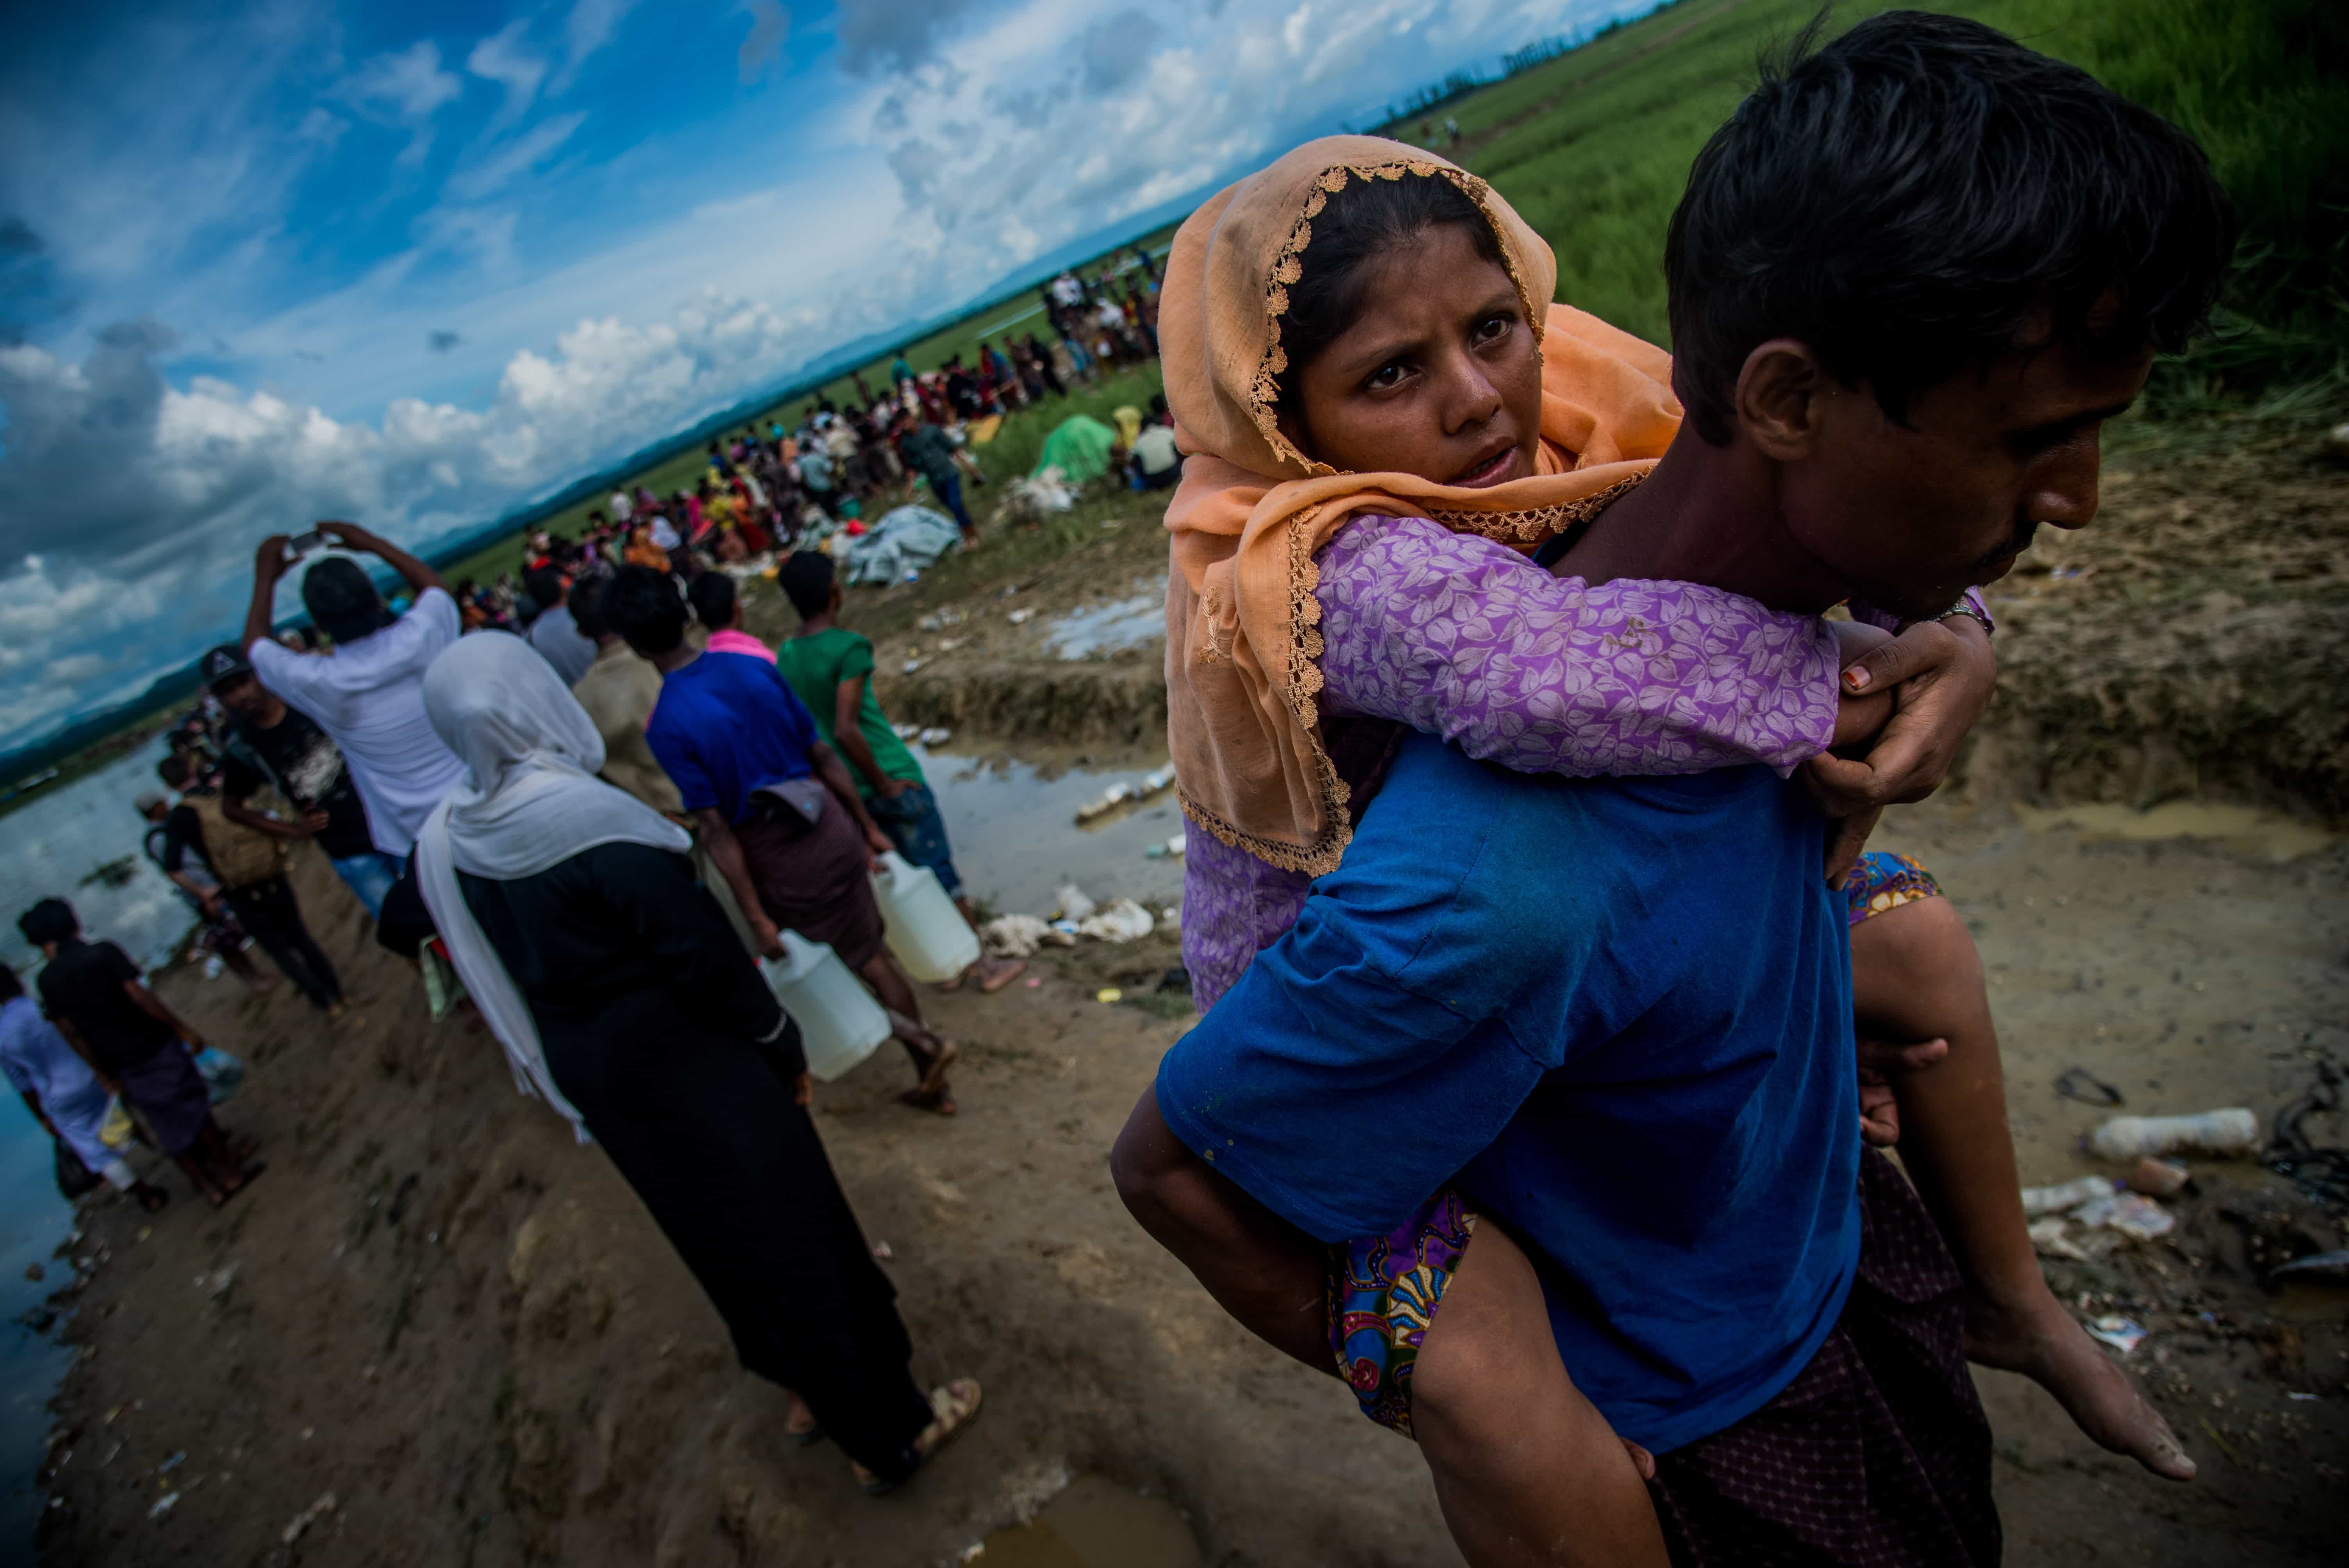 Rohingya attempting to cross the border between Myanmar and Bangladesh, October 2017 (Photo: Stringer/Anadolu Agency/Getty Images)